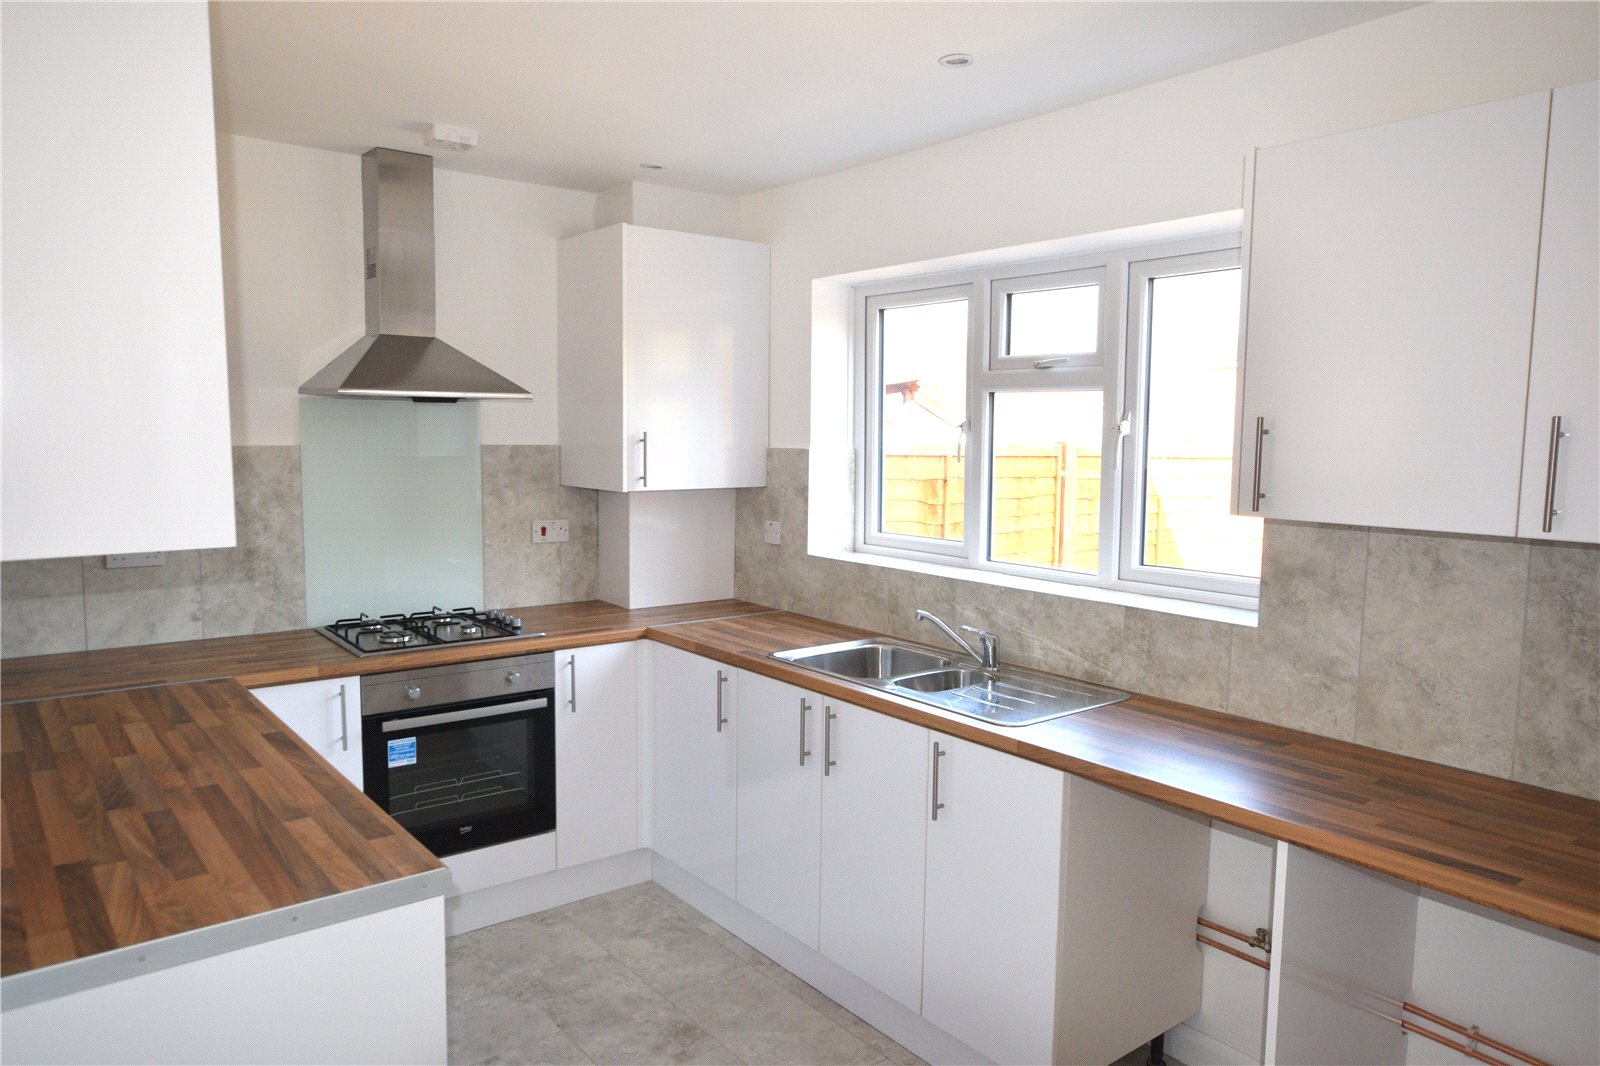 3 Bedrooms Semi Detached House for sale in Cressingham Road, Reading, Berkshire, RG2